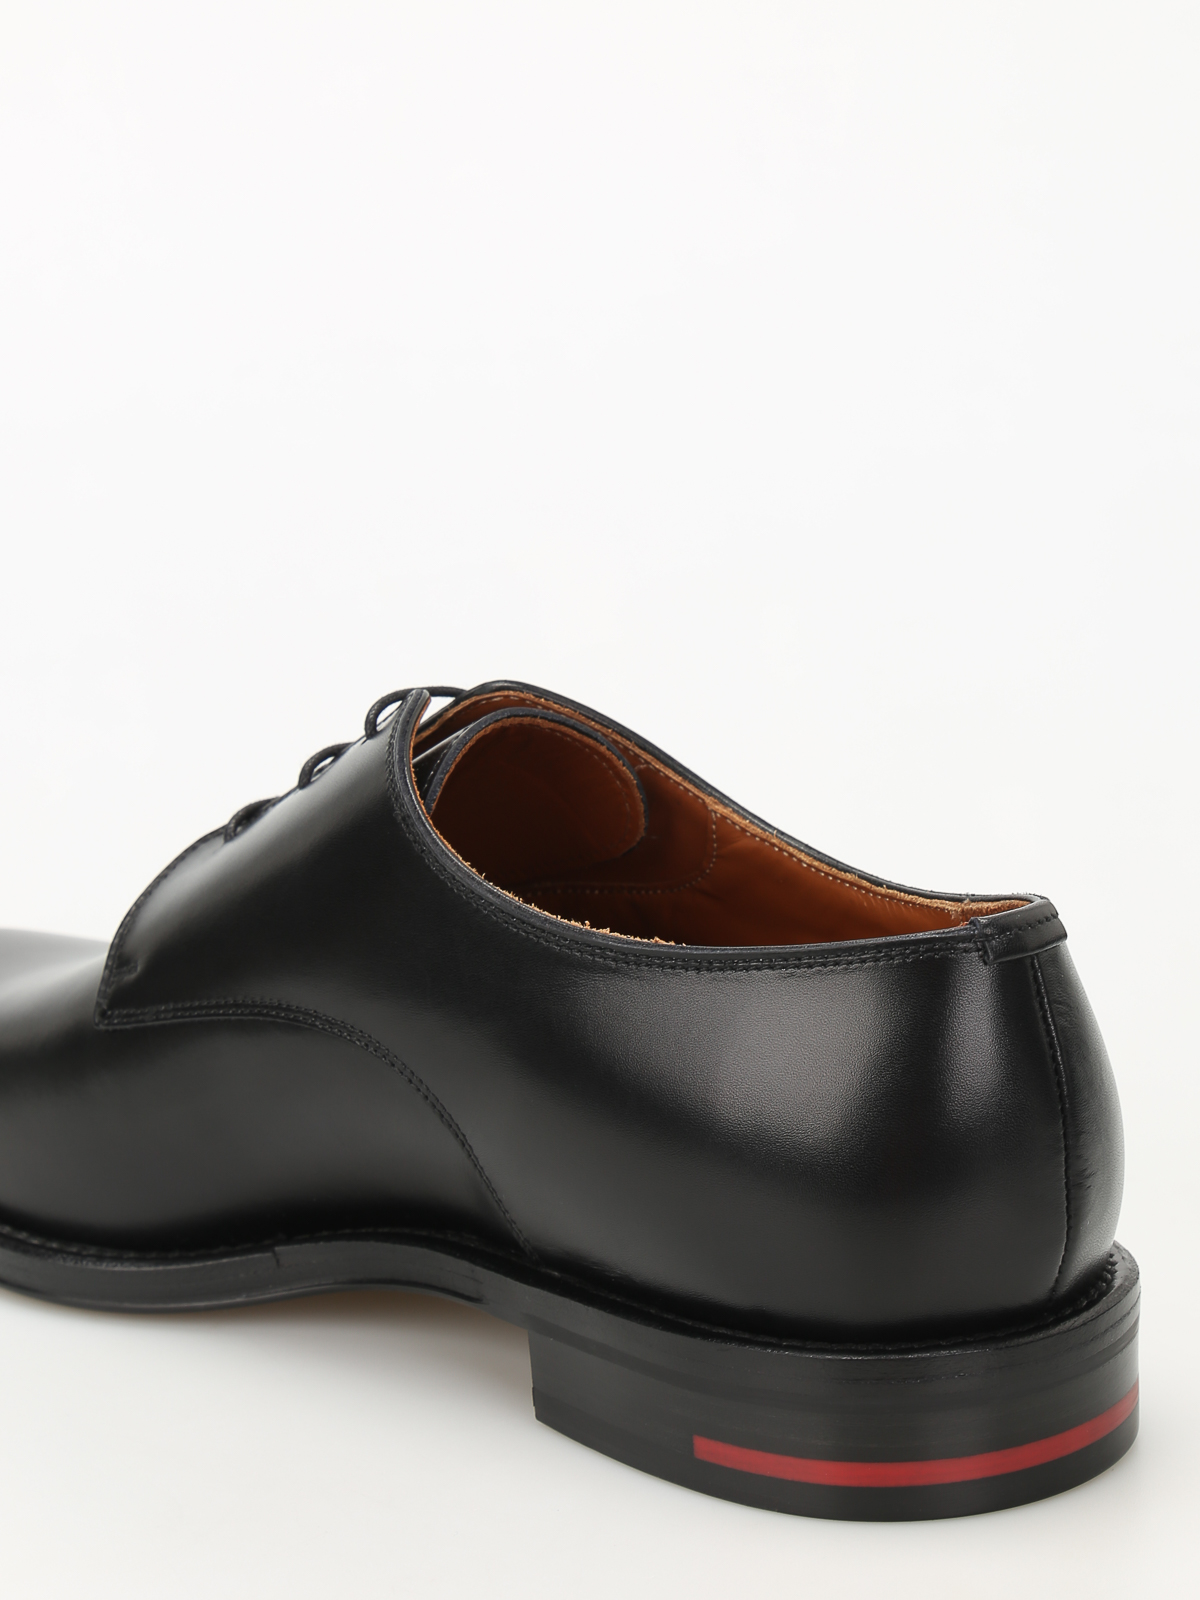 Givenchy - Derby leather shoes